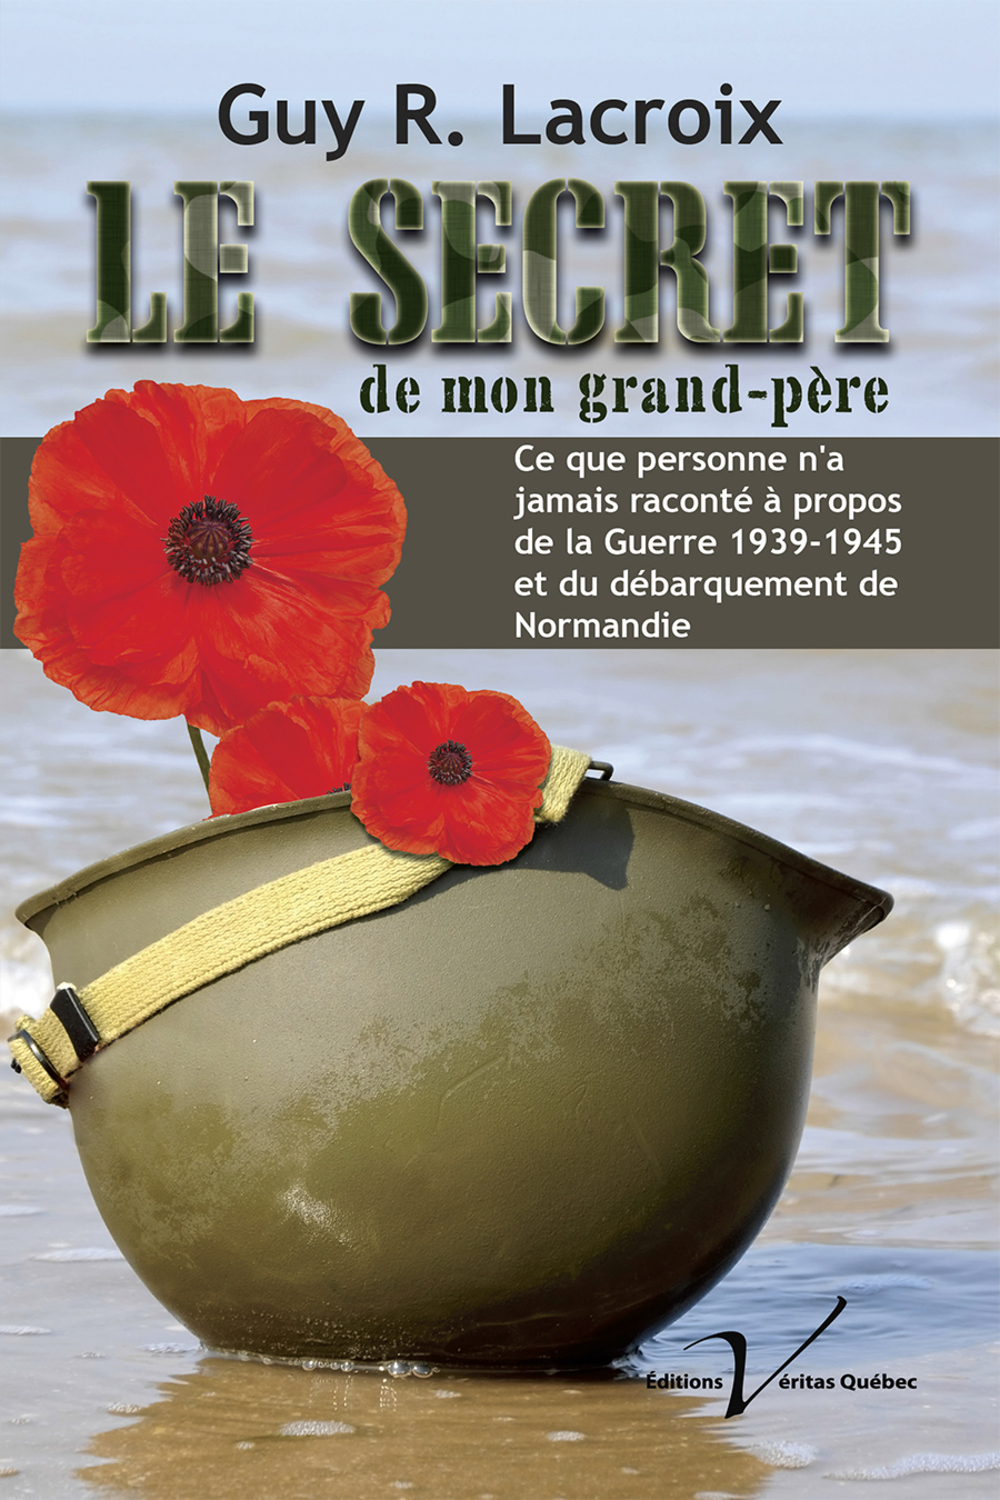 Le secret de mon grand-père